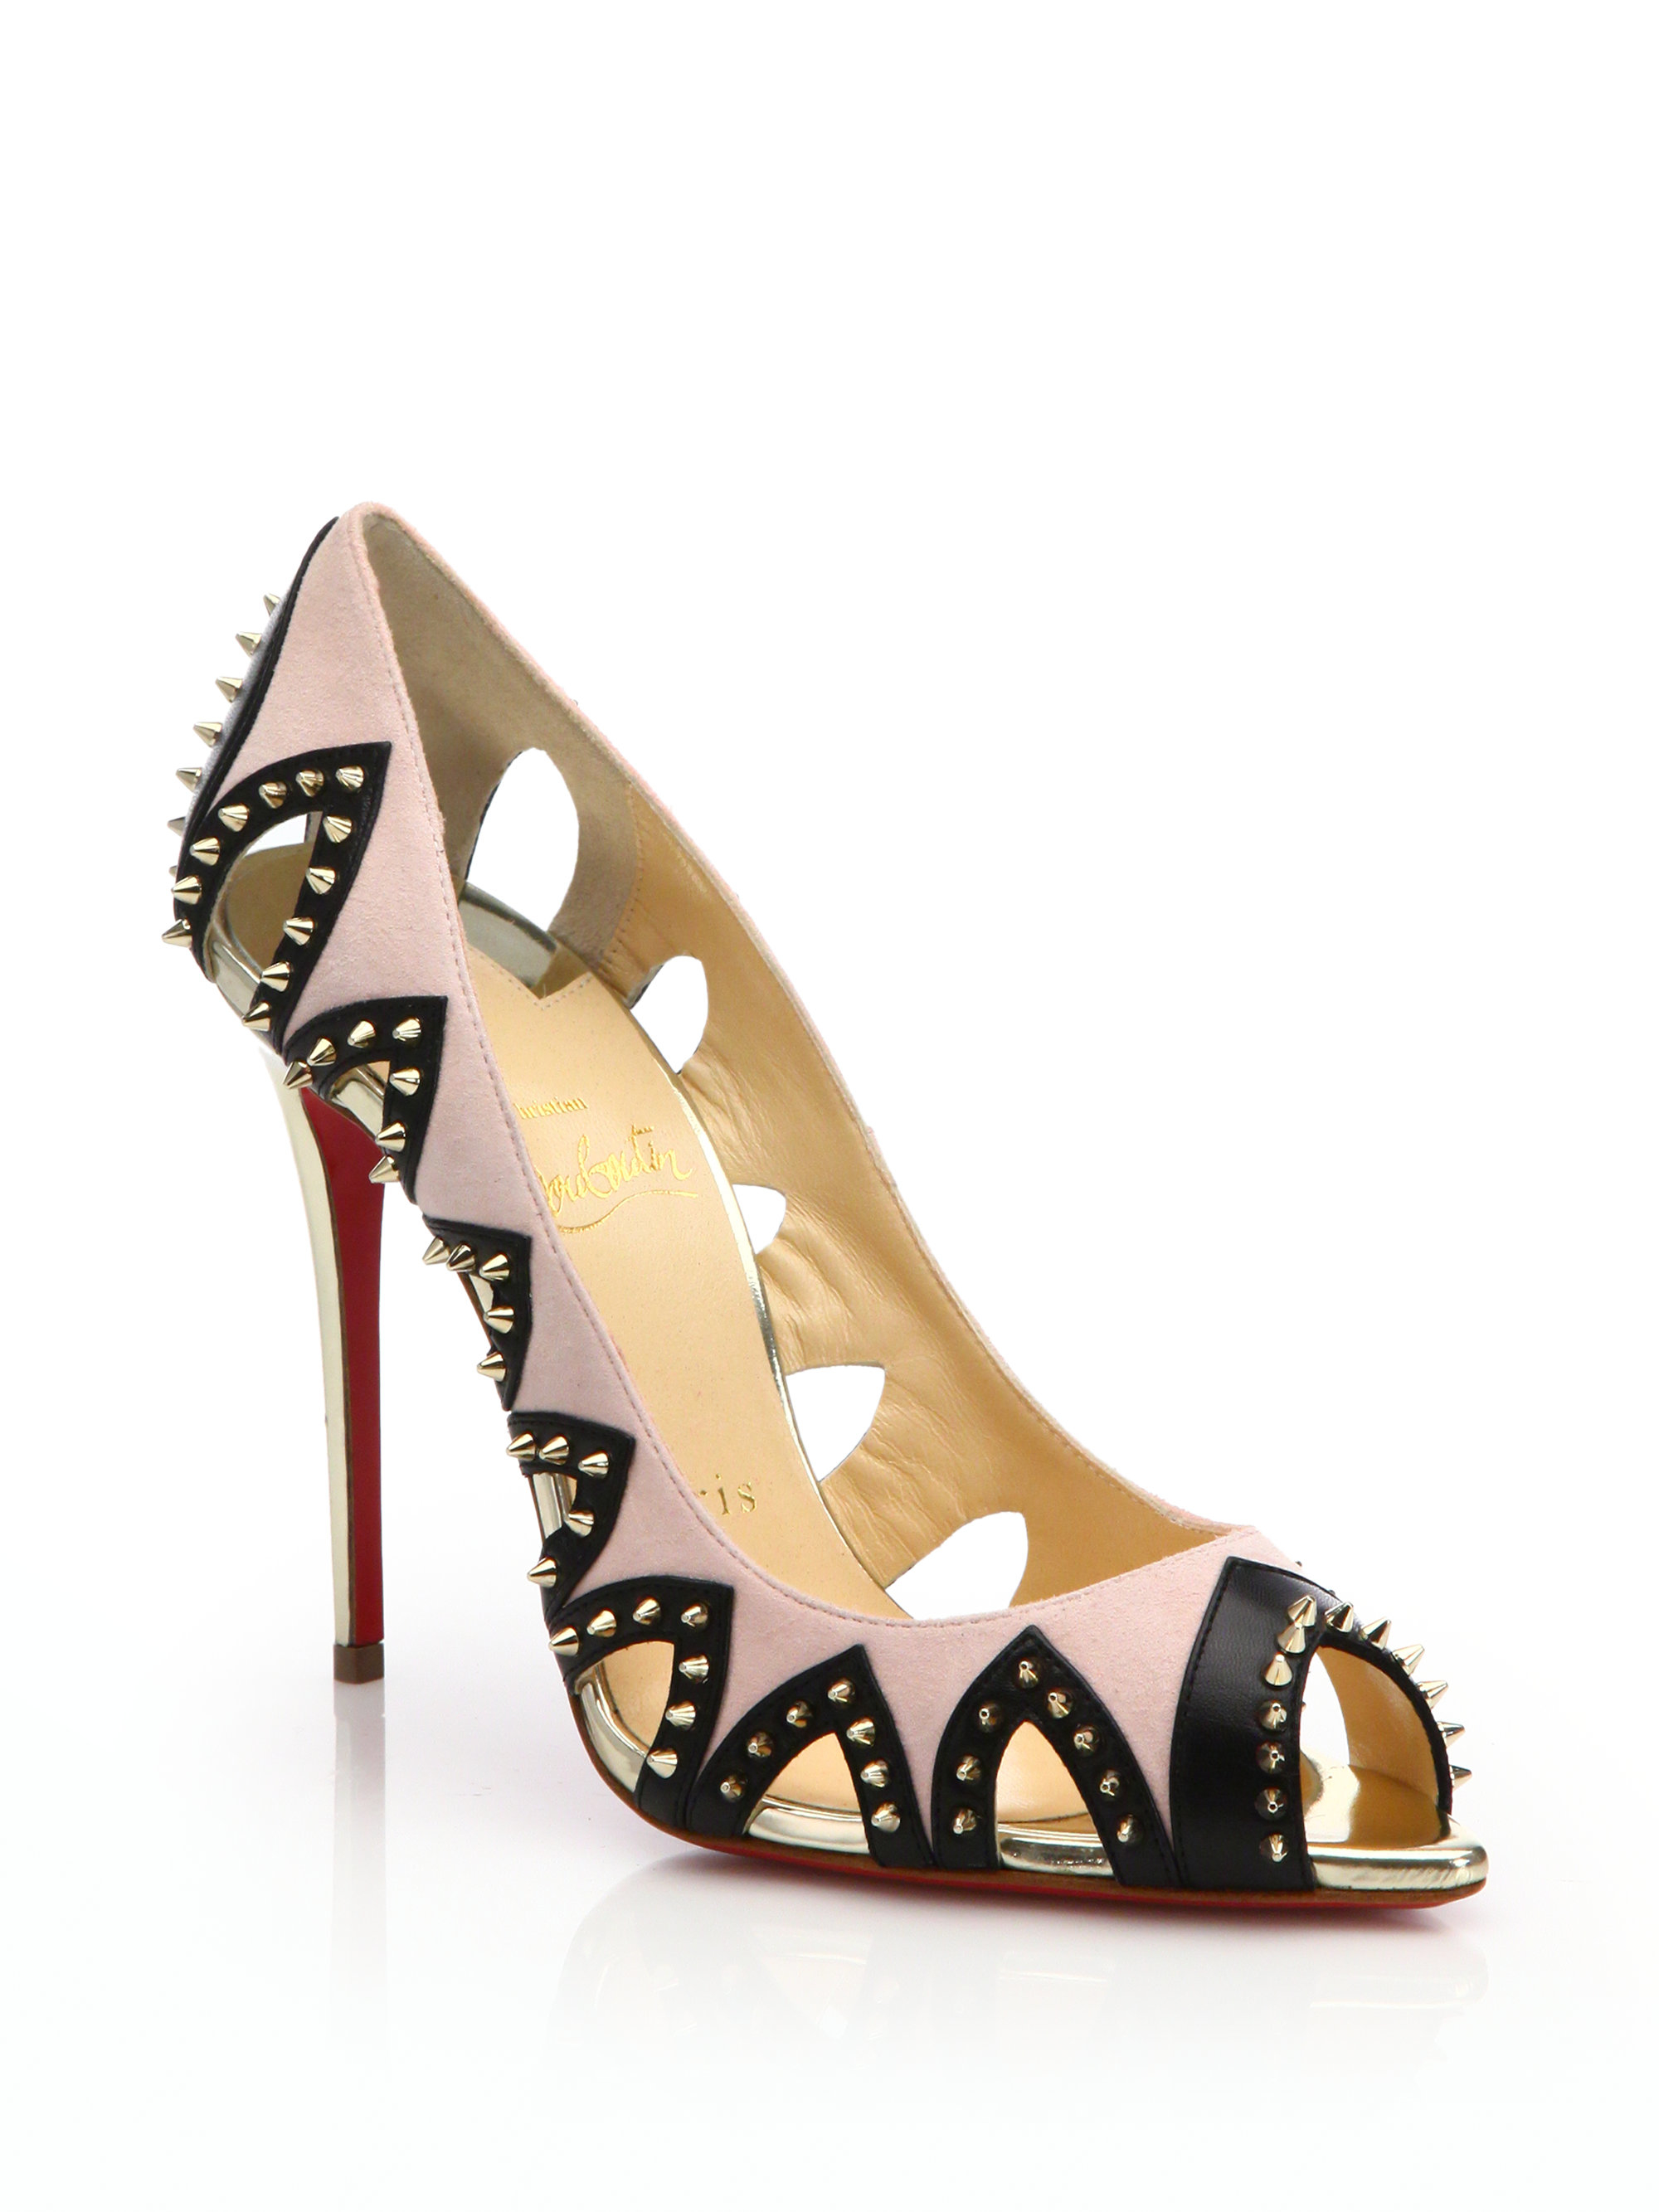 louboutin shoes prices - christian louboutin caged sandals Multicolor glitter cutouts | The ...